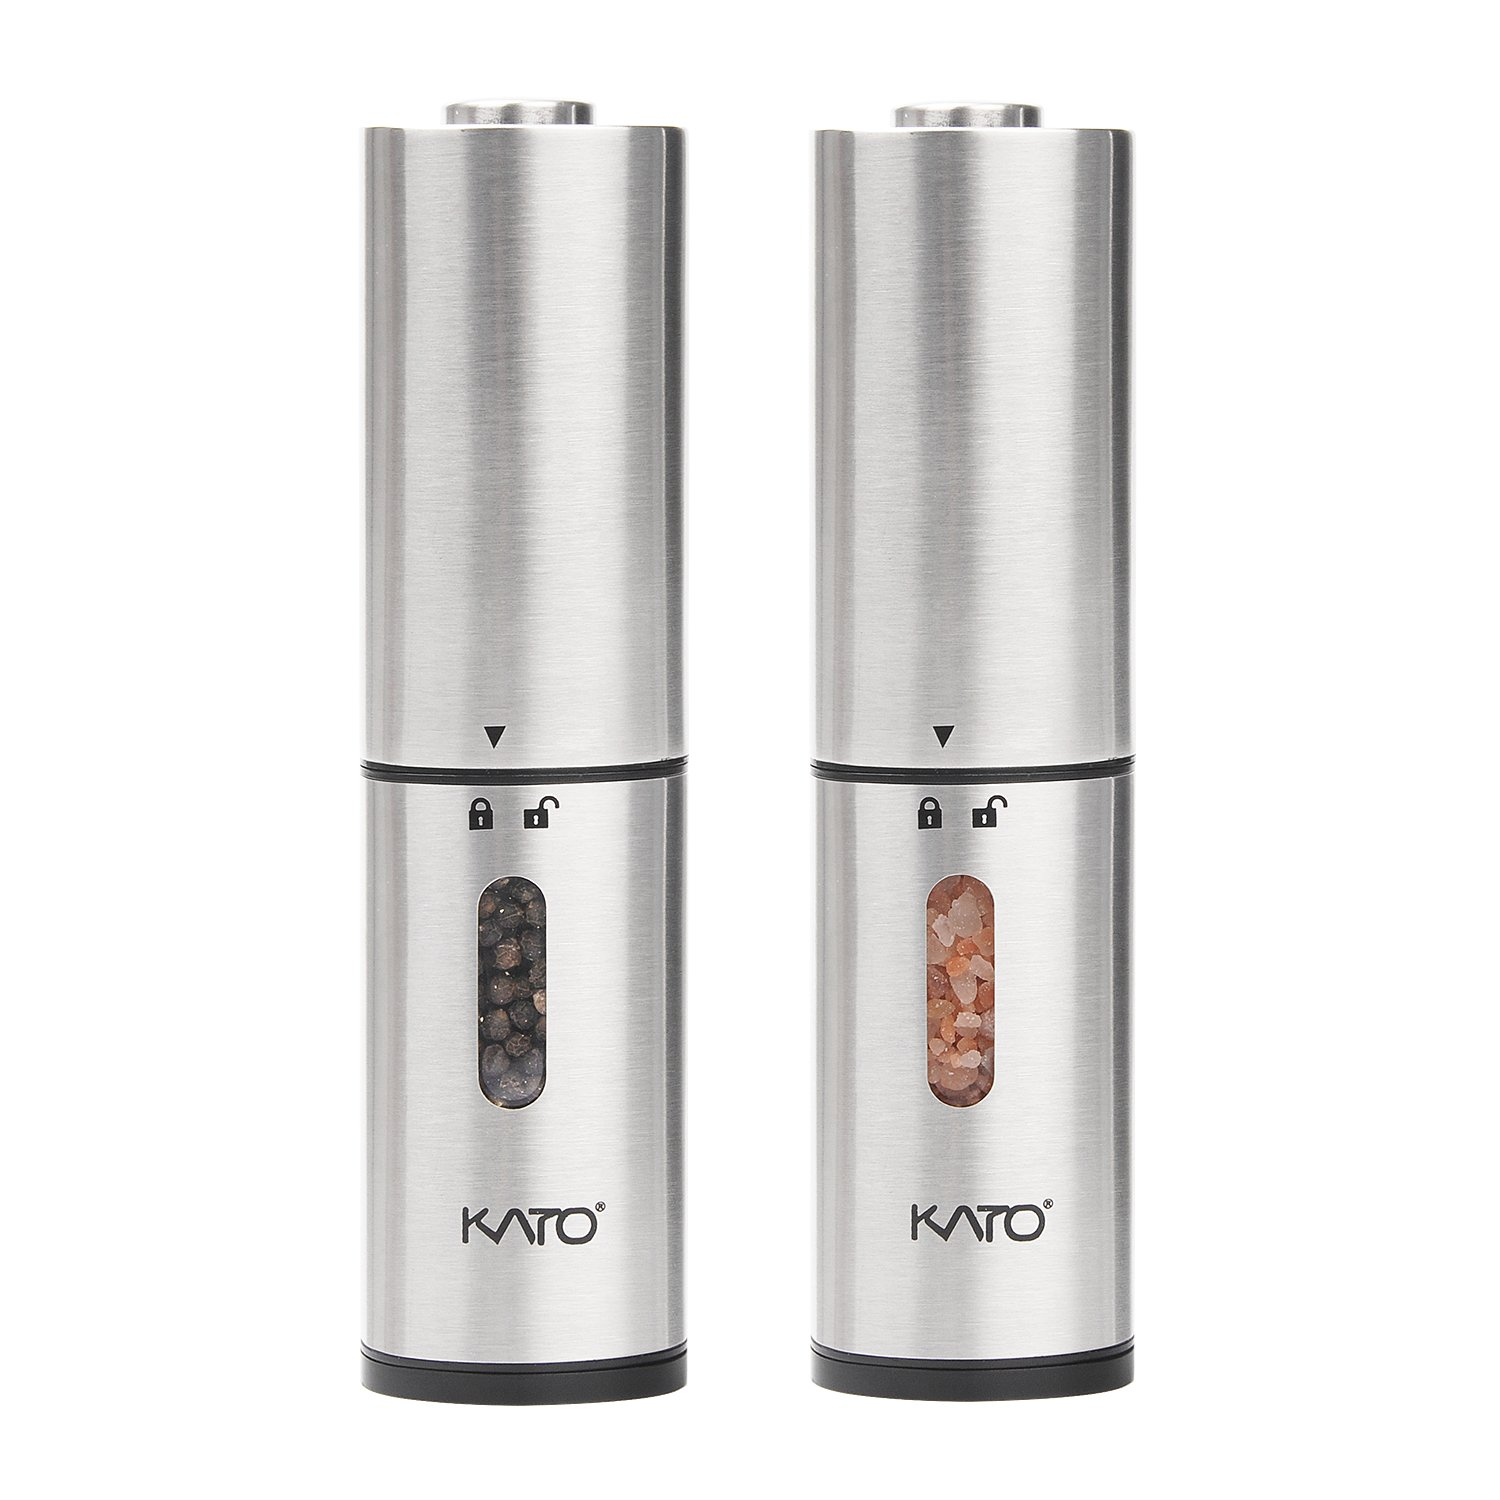 Kato Electric Salt And Pepper Grinders Set   Battery Operated, Stainless Steel, Automatic Pepper Shaker Mill With Led Light And Adjustable Coarseness For Flavor & Seasoning, Pack Of 2 by Kato